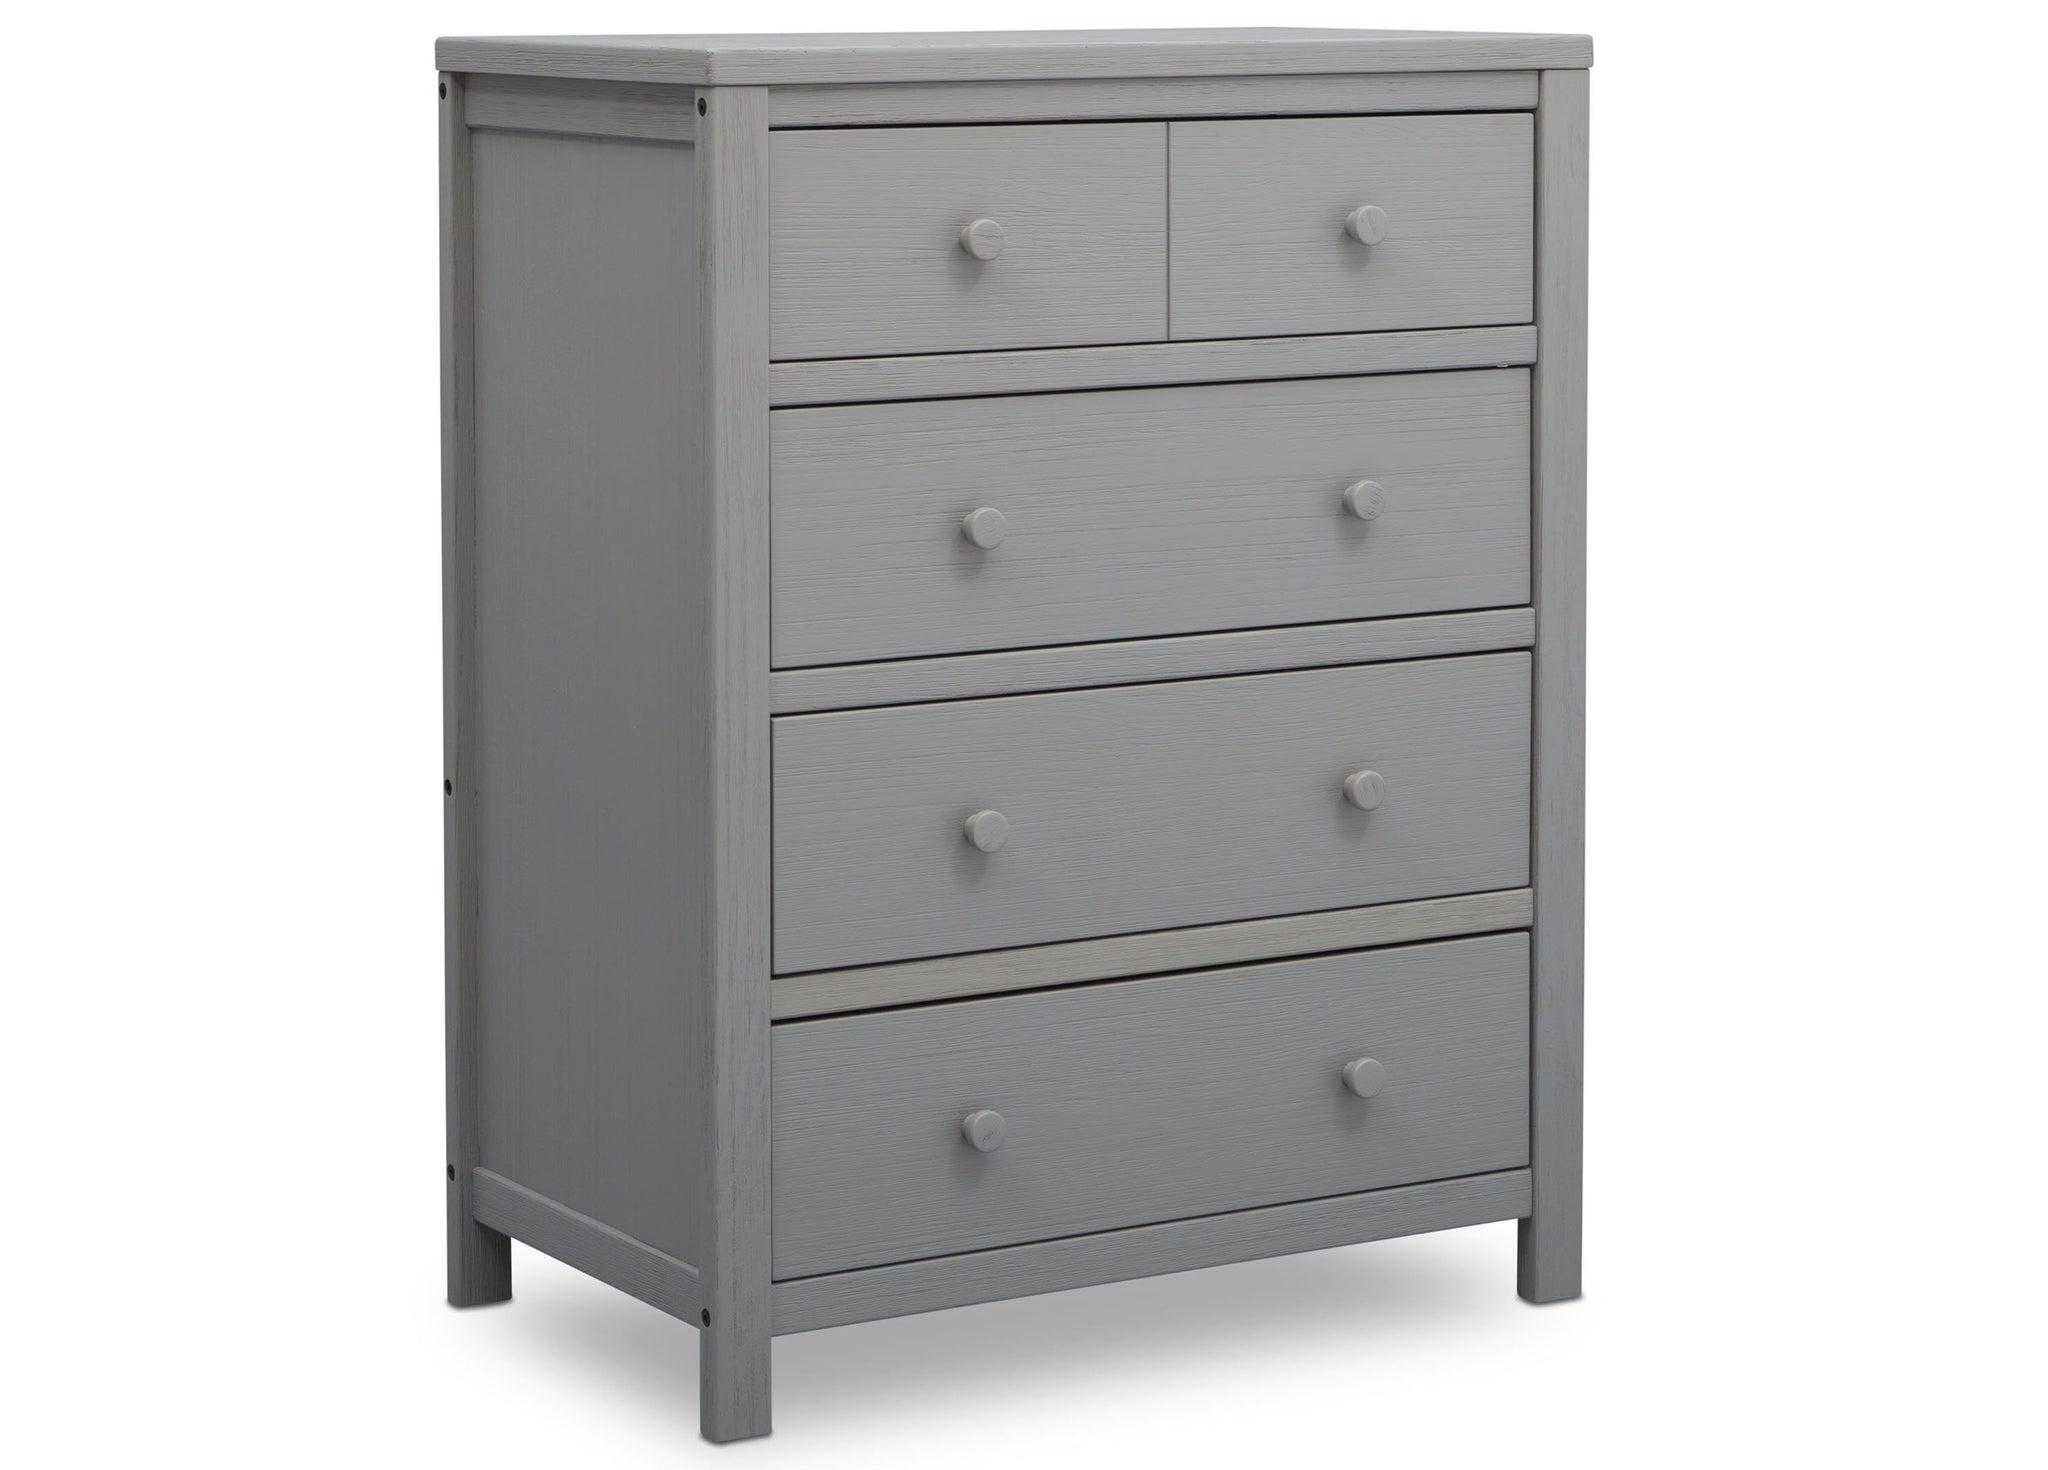 Delta Children Rustic Haze (940) Cambridge 4 Drawer Dresser (535040), Side View, c2c